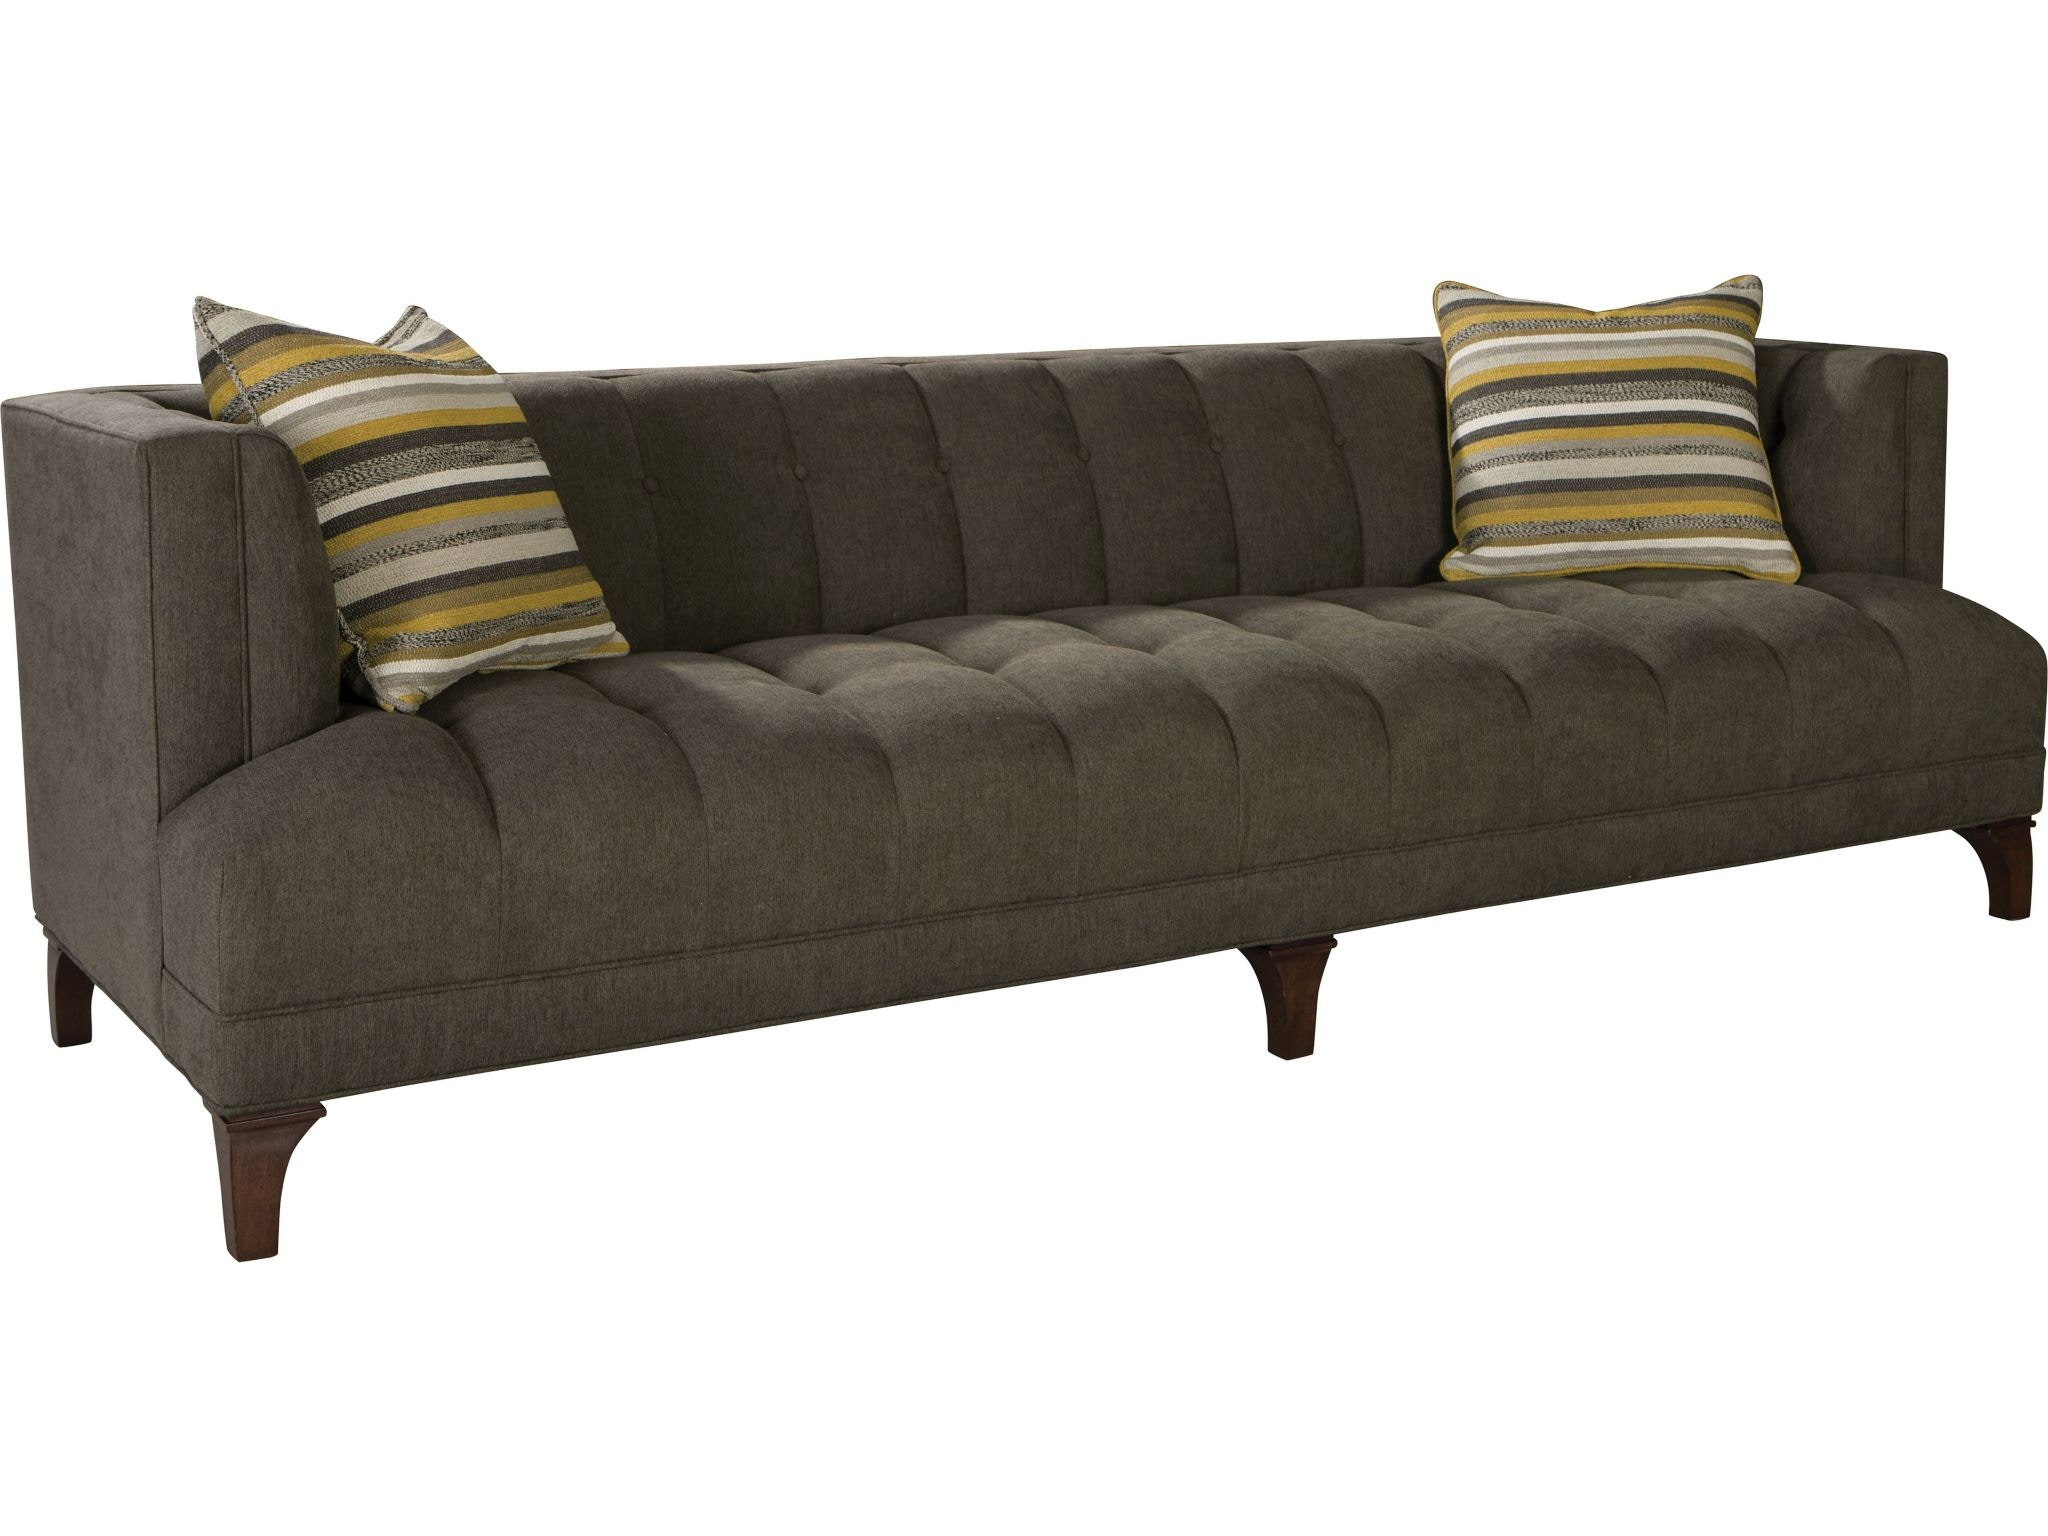 Thomasville Living Room Trousdale Sofa 2670 11 - Ennis Fine Furniture - Boise, ID, Reno, NV ...